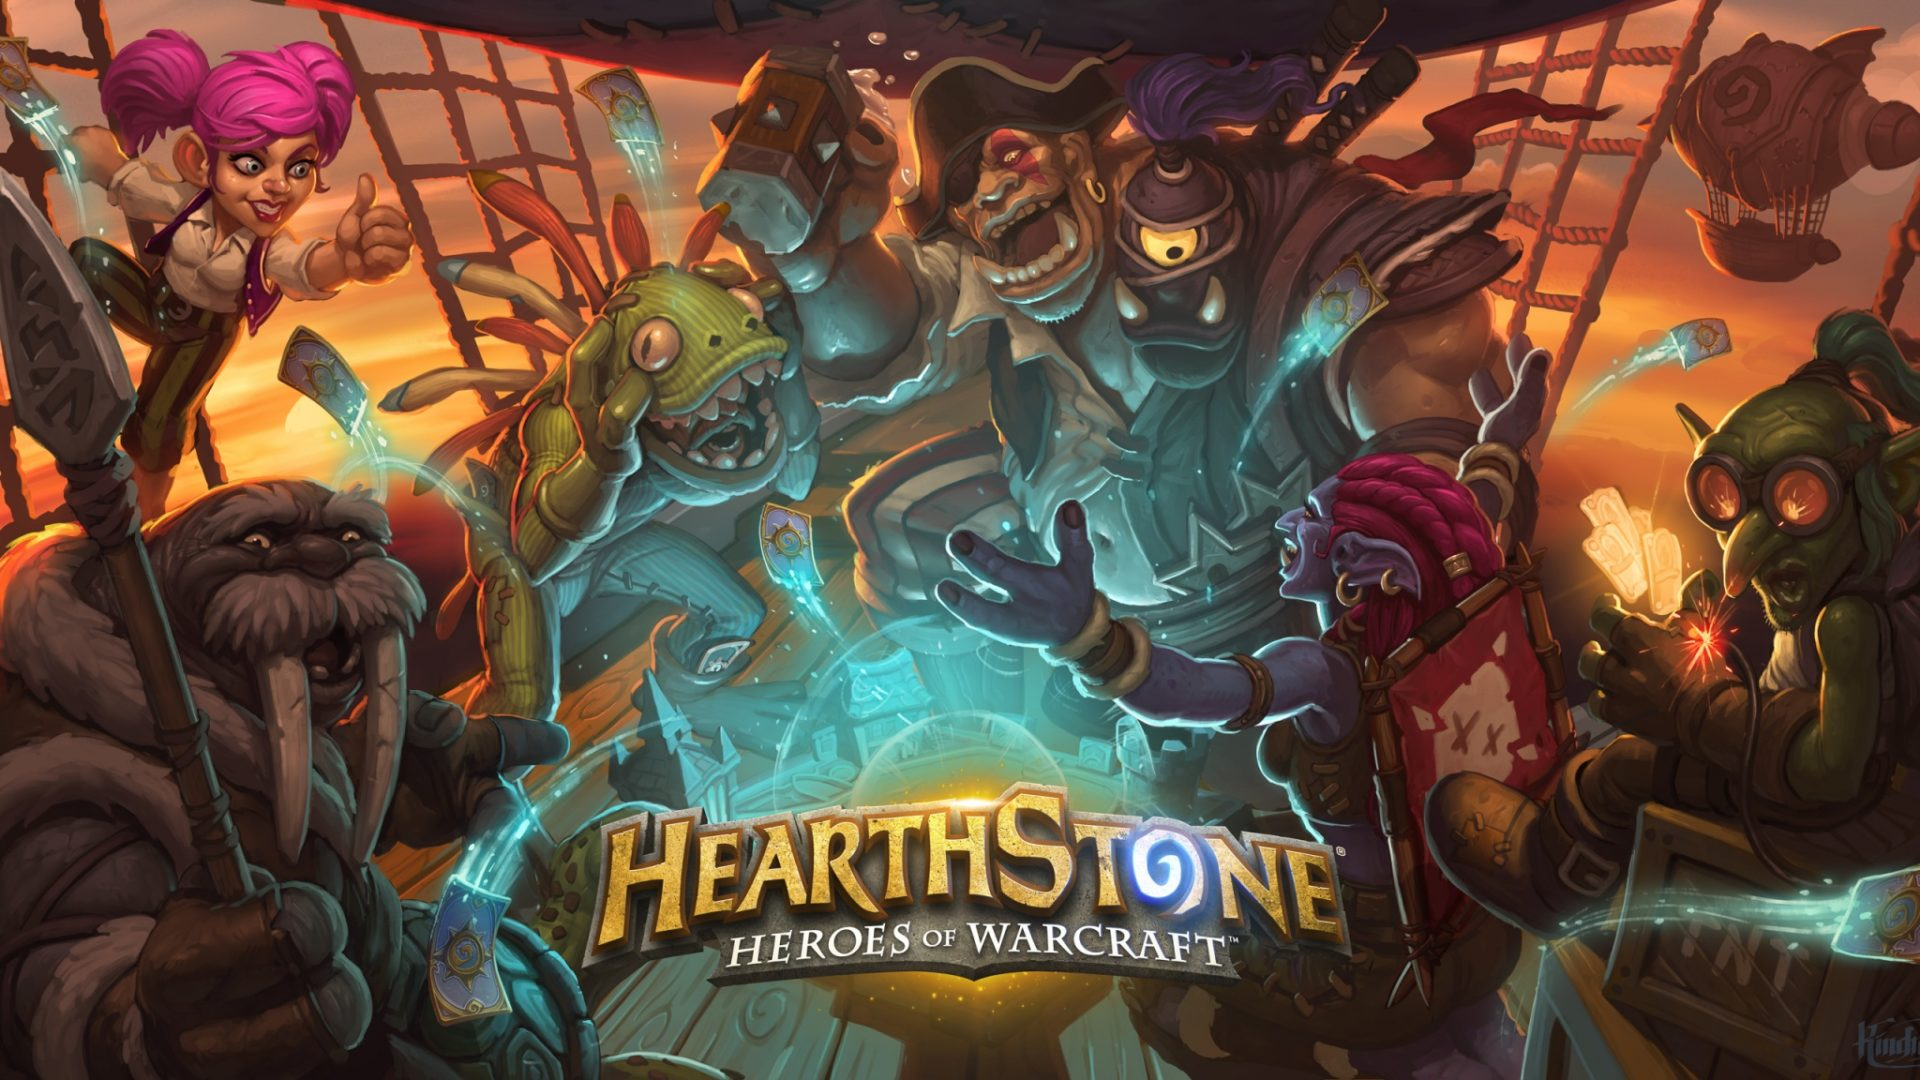 Hearthstone will get three card expansion packs in 2017